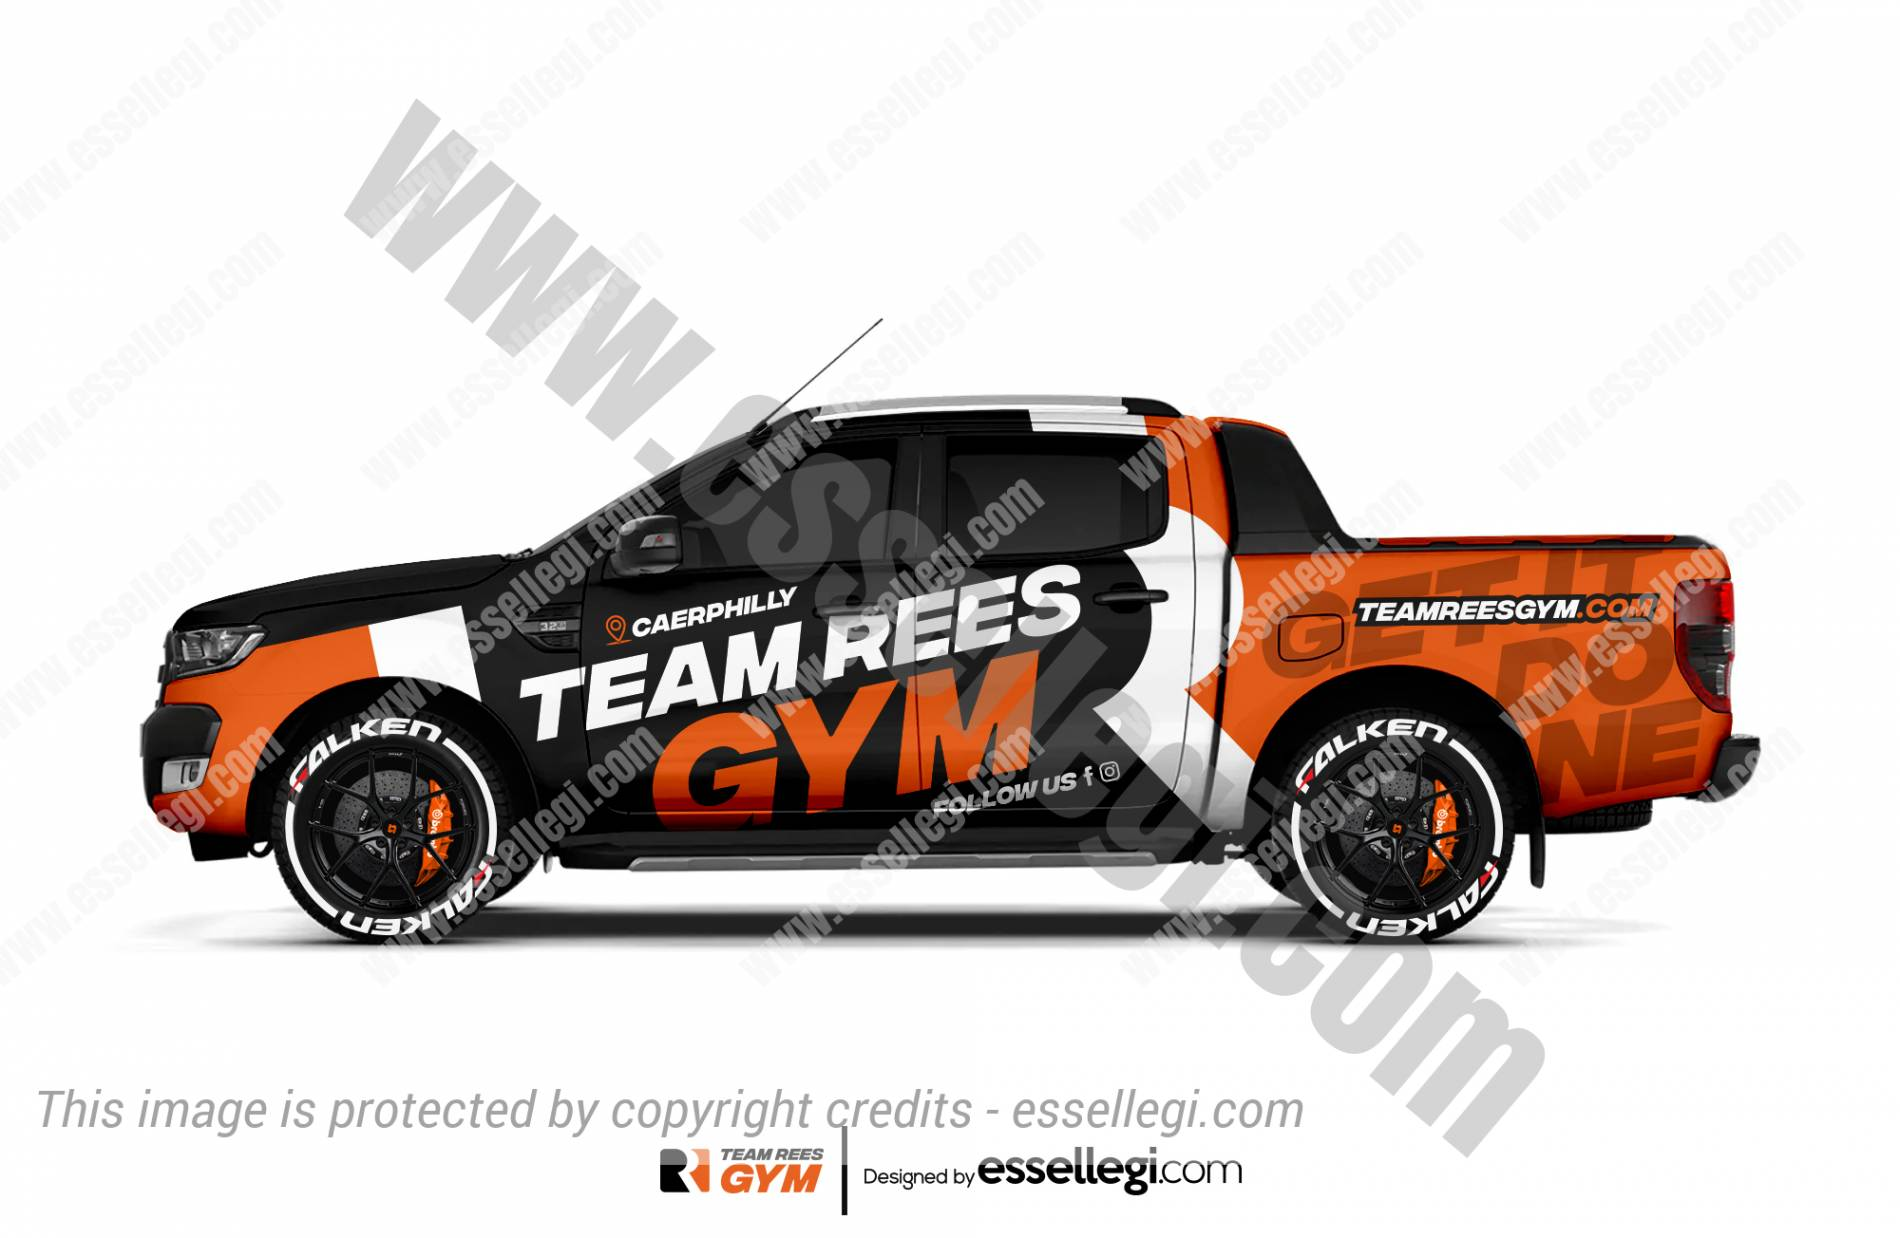 TEAM REES GYM | TRUCK WRAP DESIGN 🇬🇧